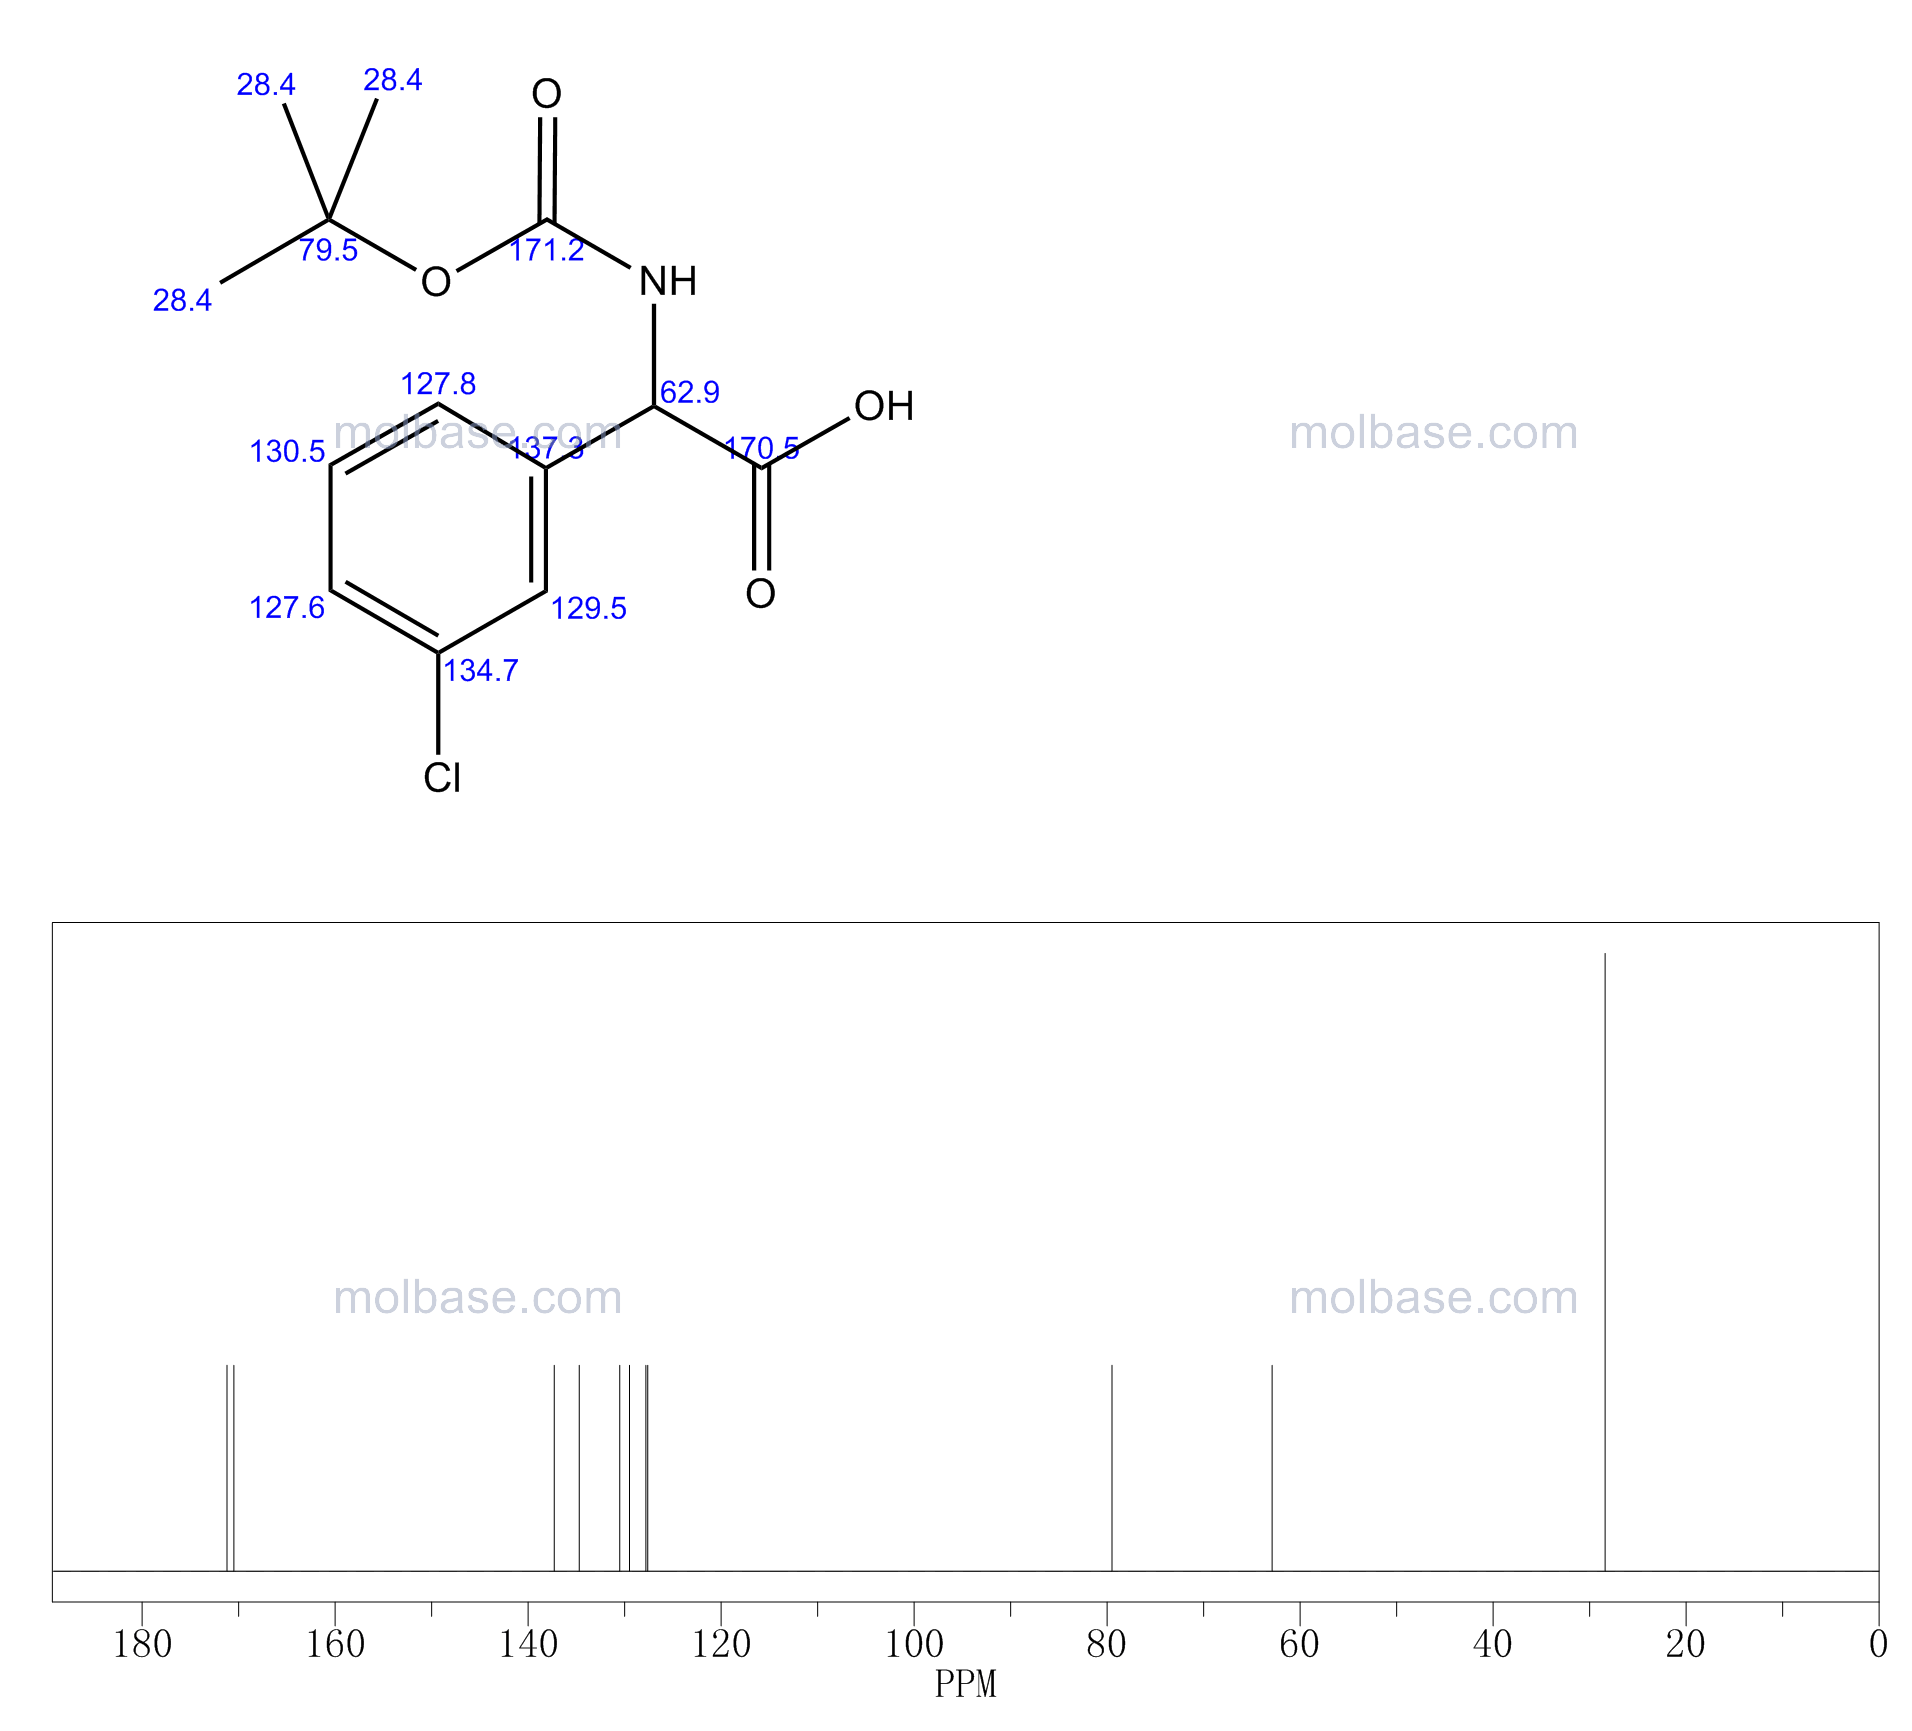 2-(3-chlorophenyl)-2-[(2-methylpropan-2-yl)oxycarbonylamino]acetic acid NMR spectra analysis, Chemical CAS NO. 669713-92-2 NMR spectral analysis, 2-(3-chlorophenyl)-2-[(2-methylpropan-2-yl)oxycarbonylamino]acetic acid C-NMR spectrum